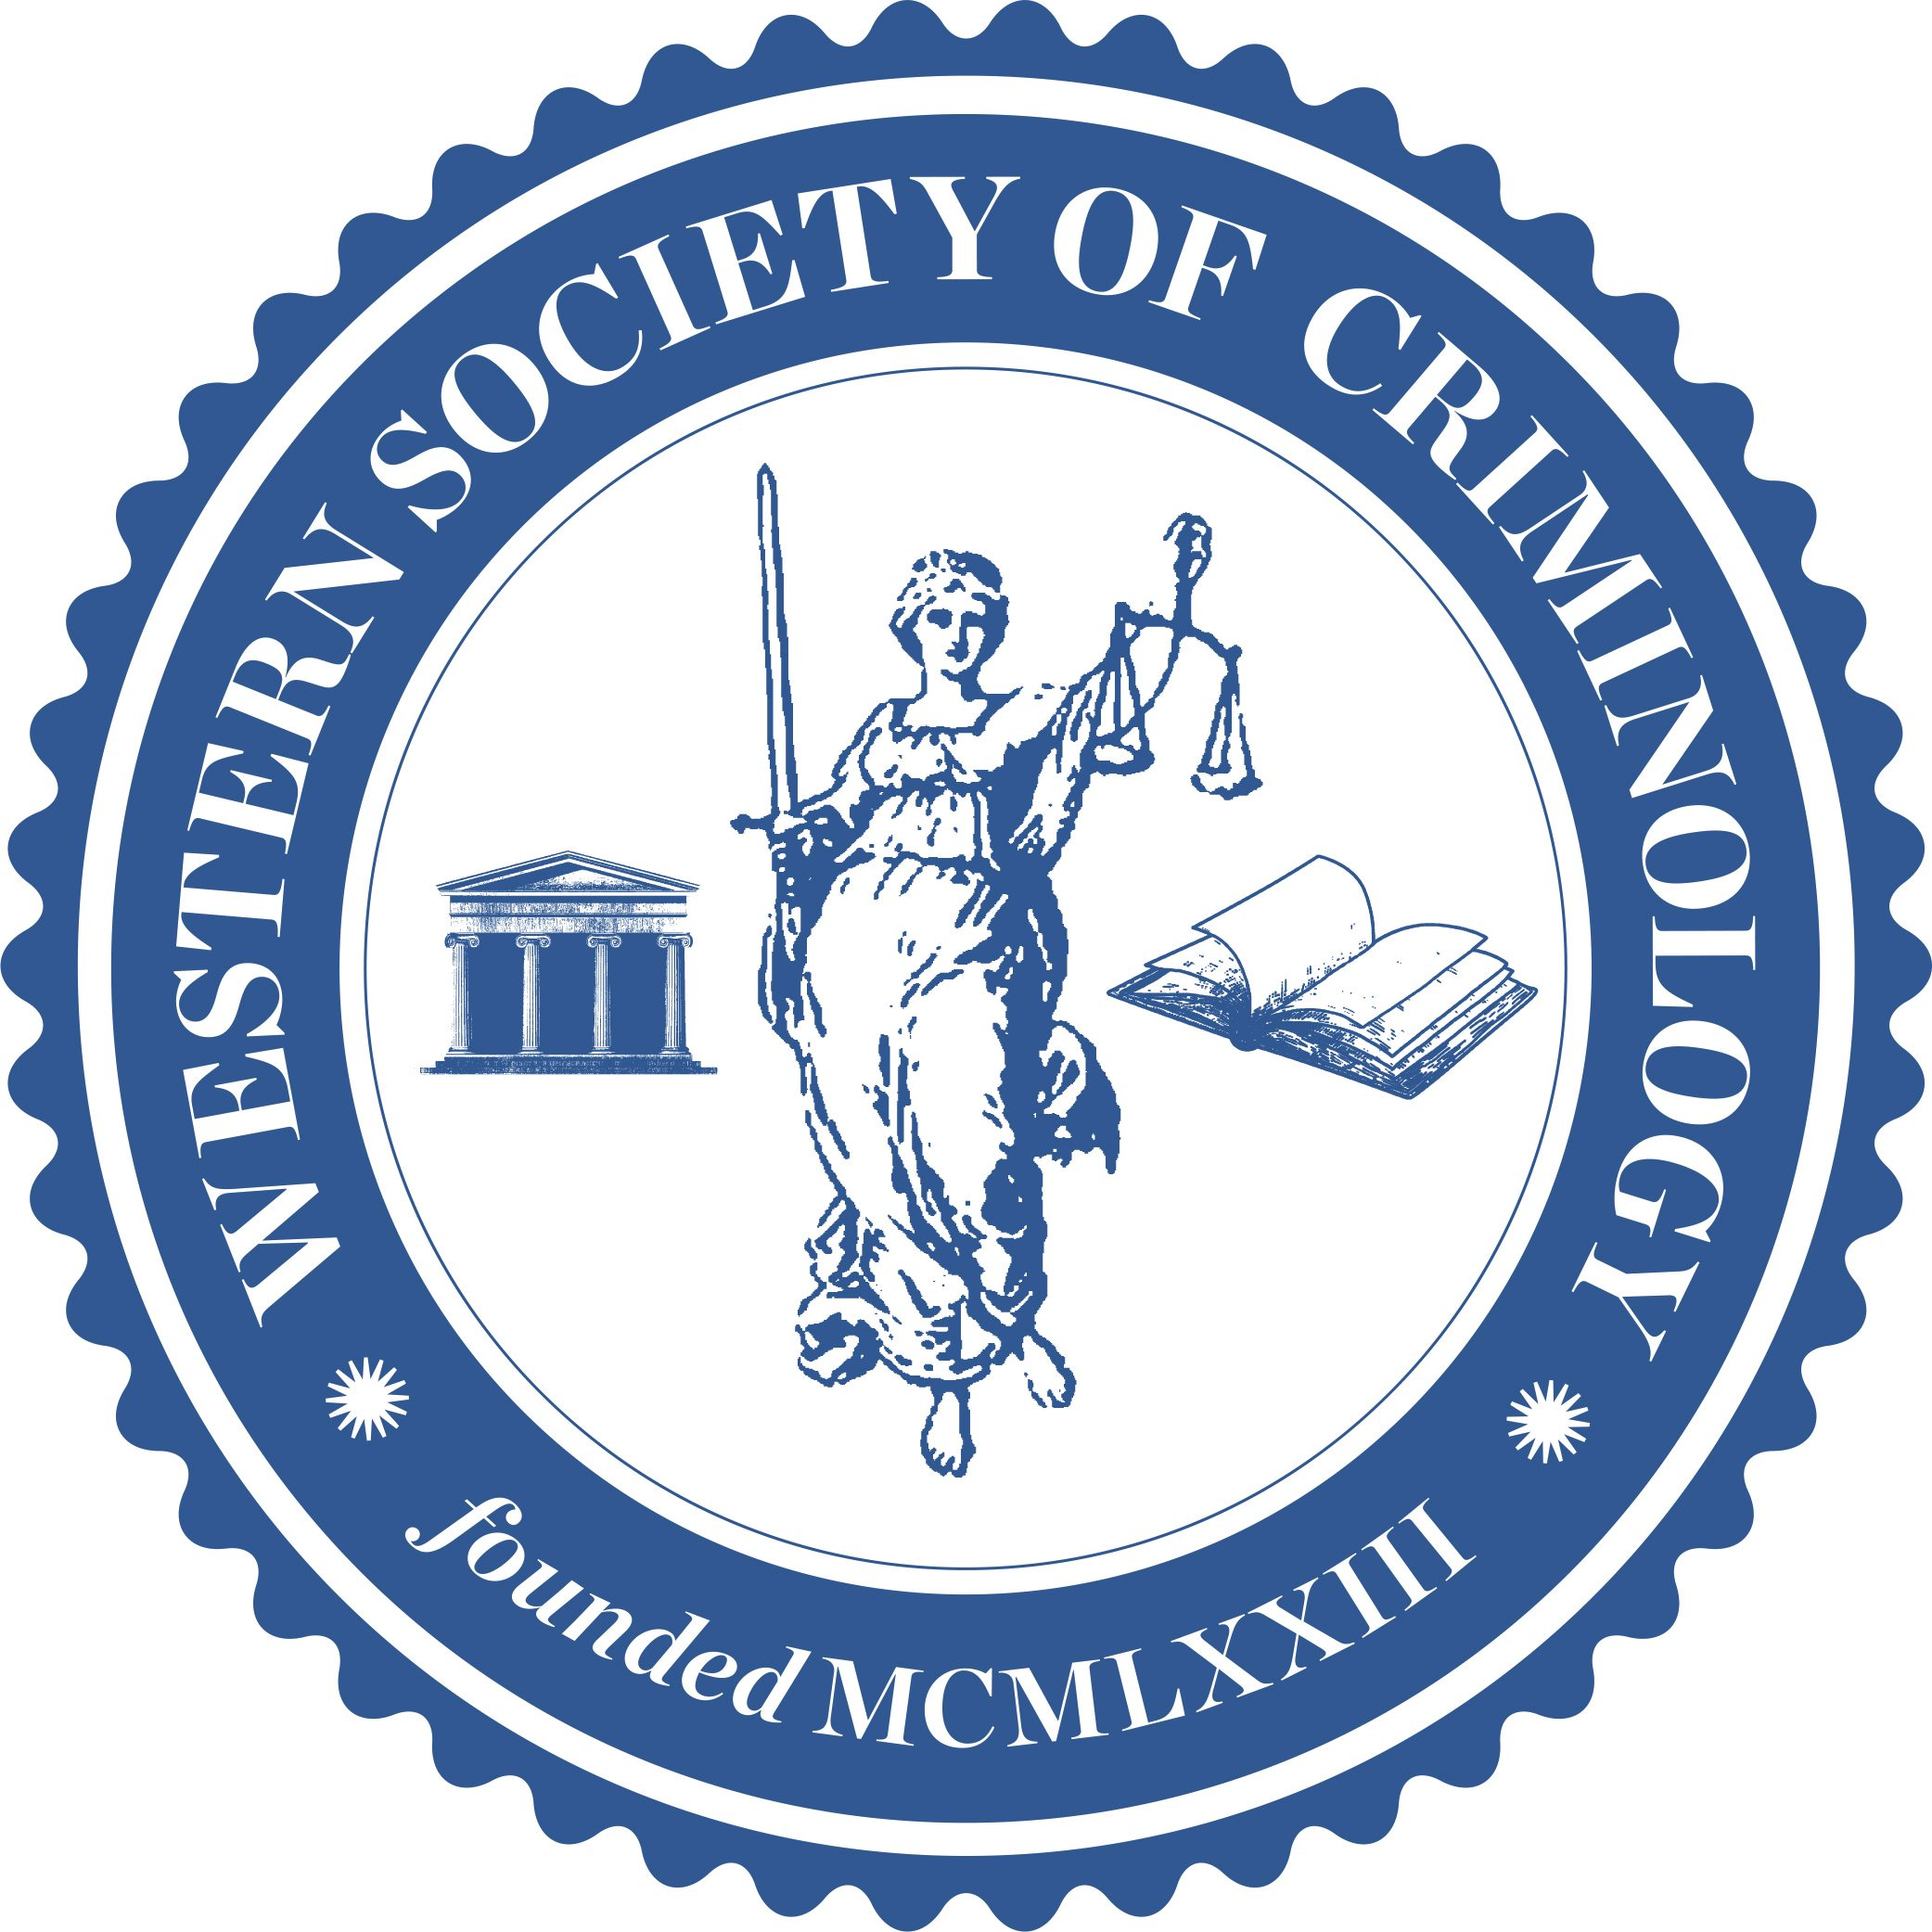 Western Society of Criminology